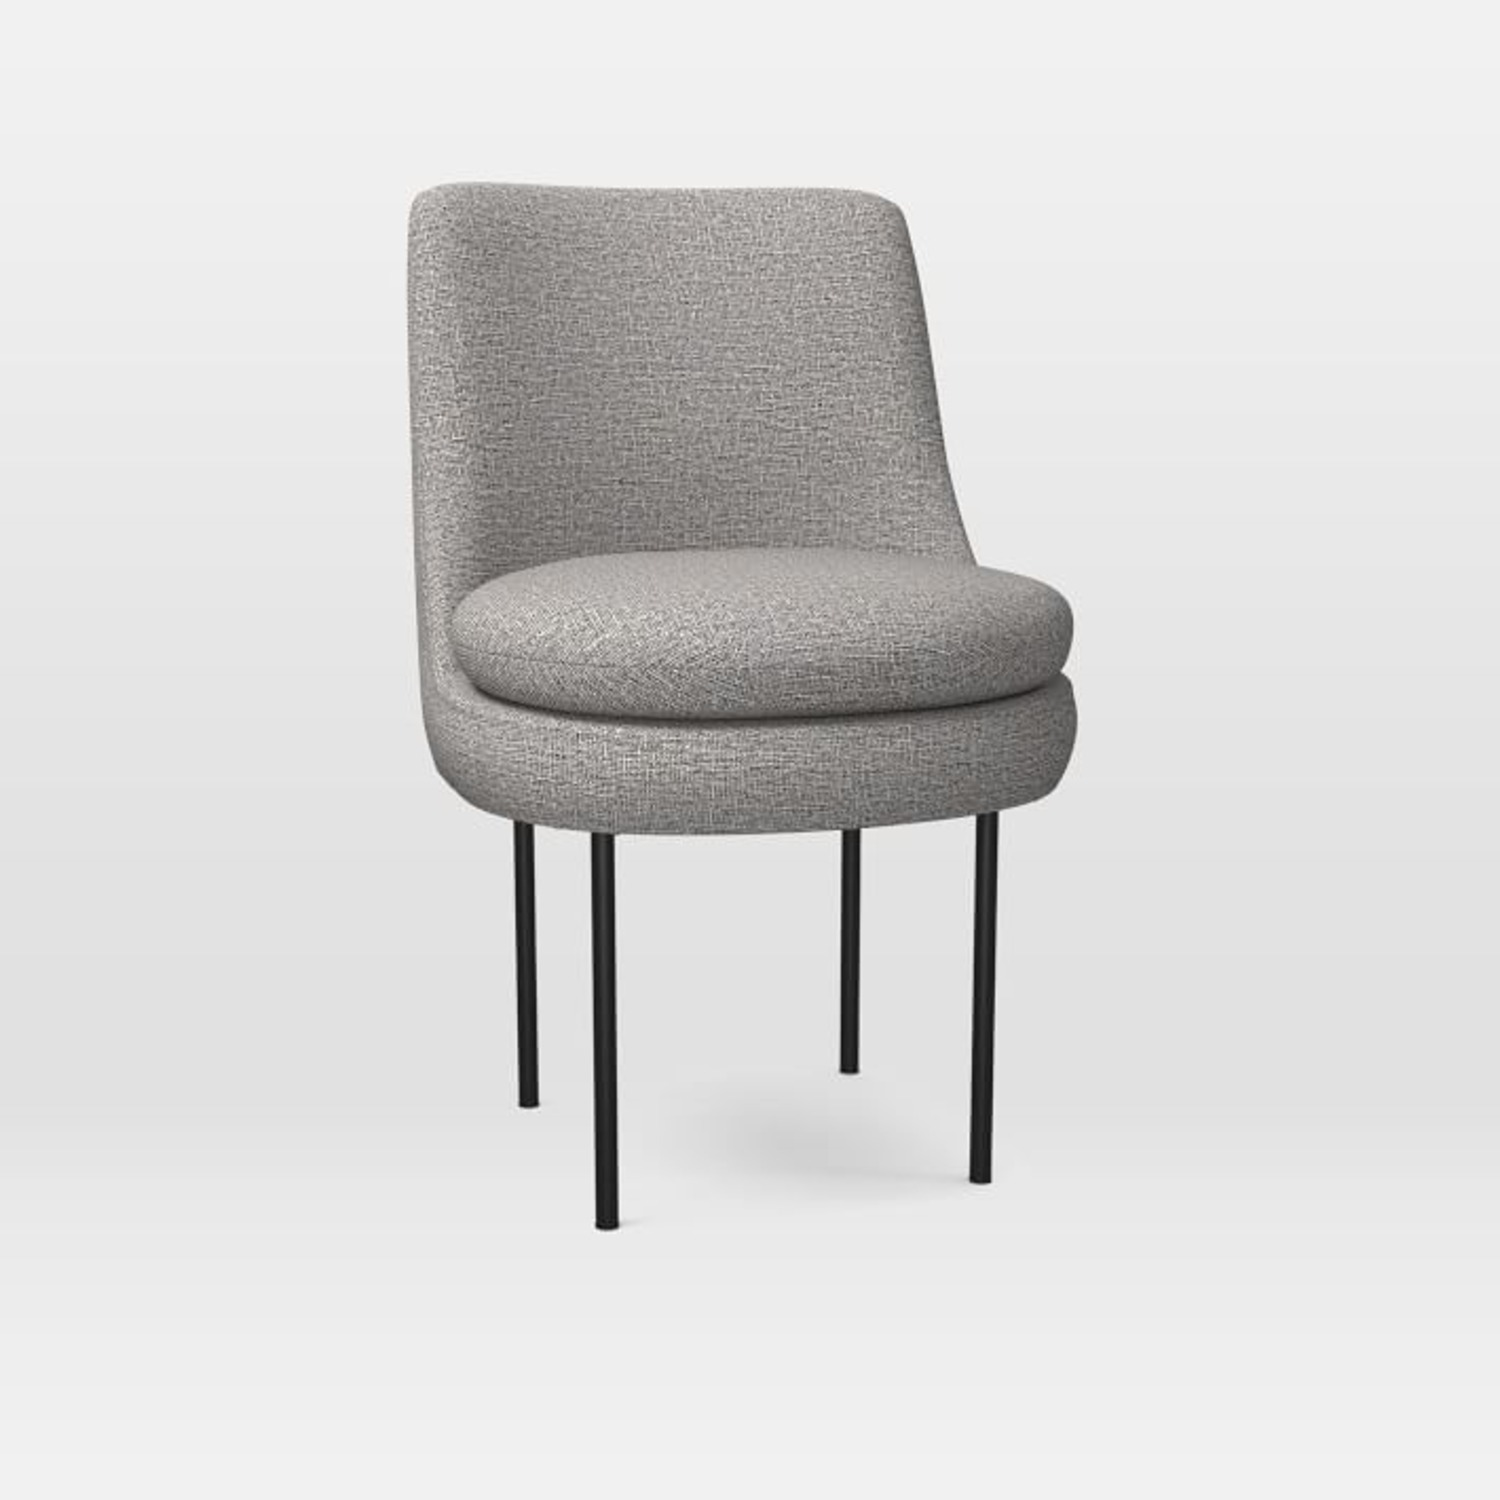 West Elm Modern Curved Upholstered Dining Chair - image-1